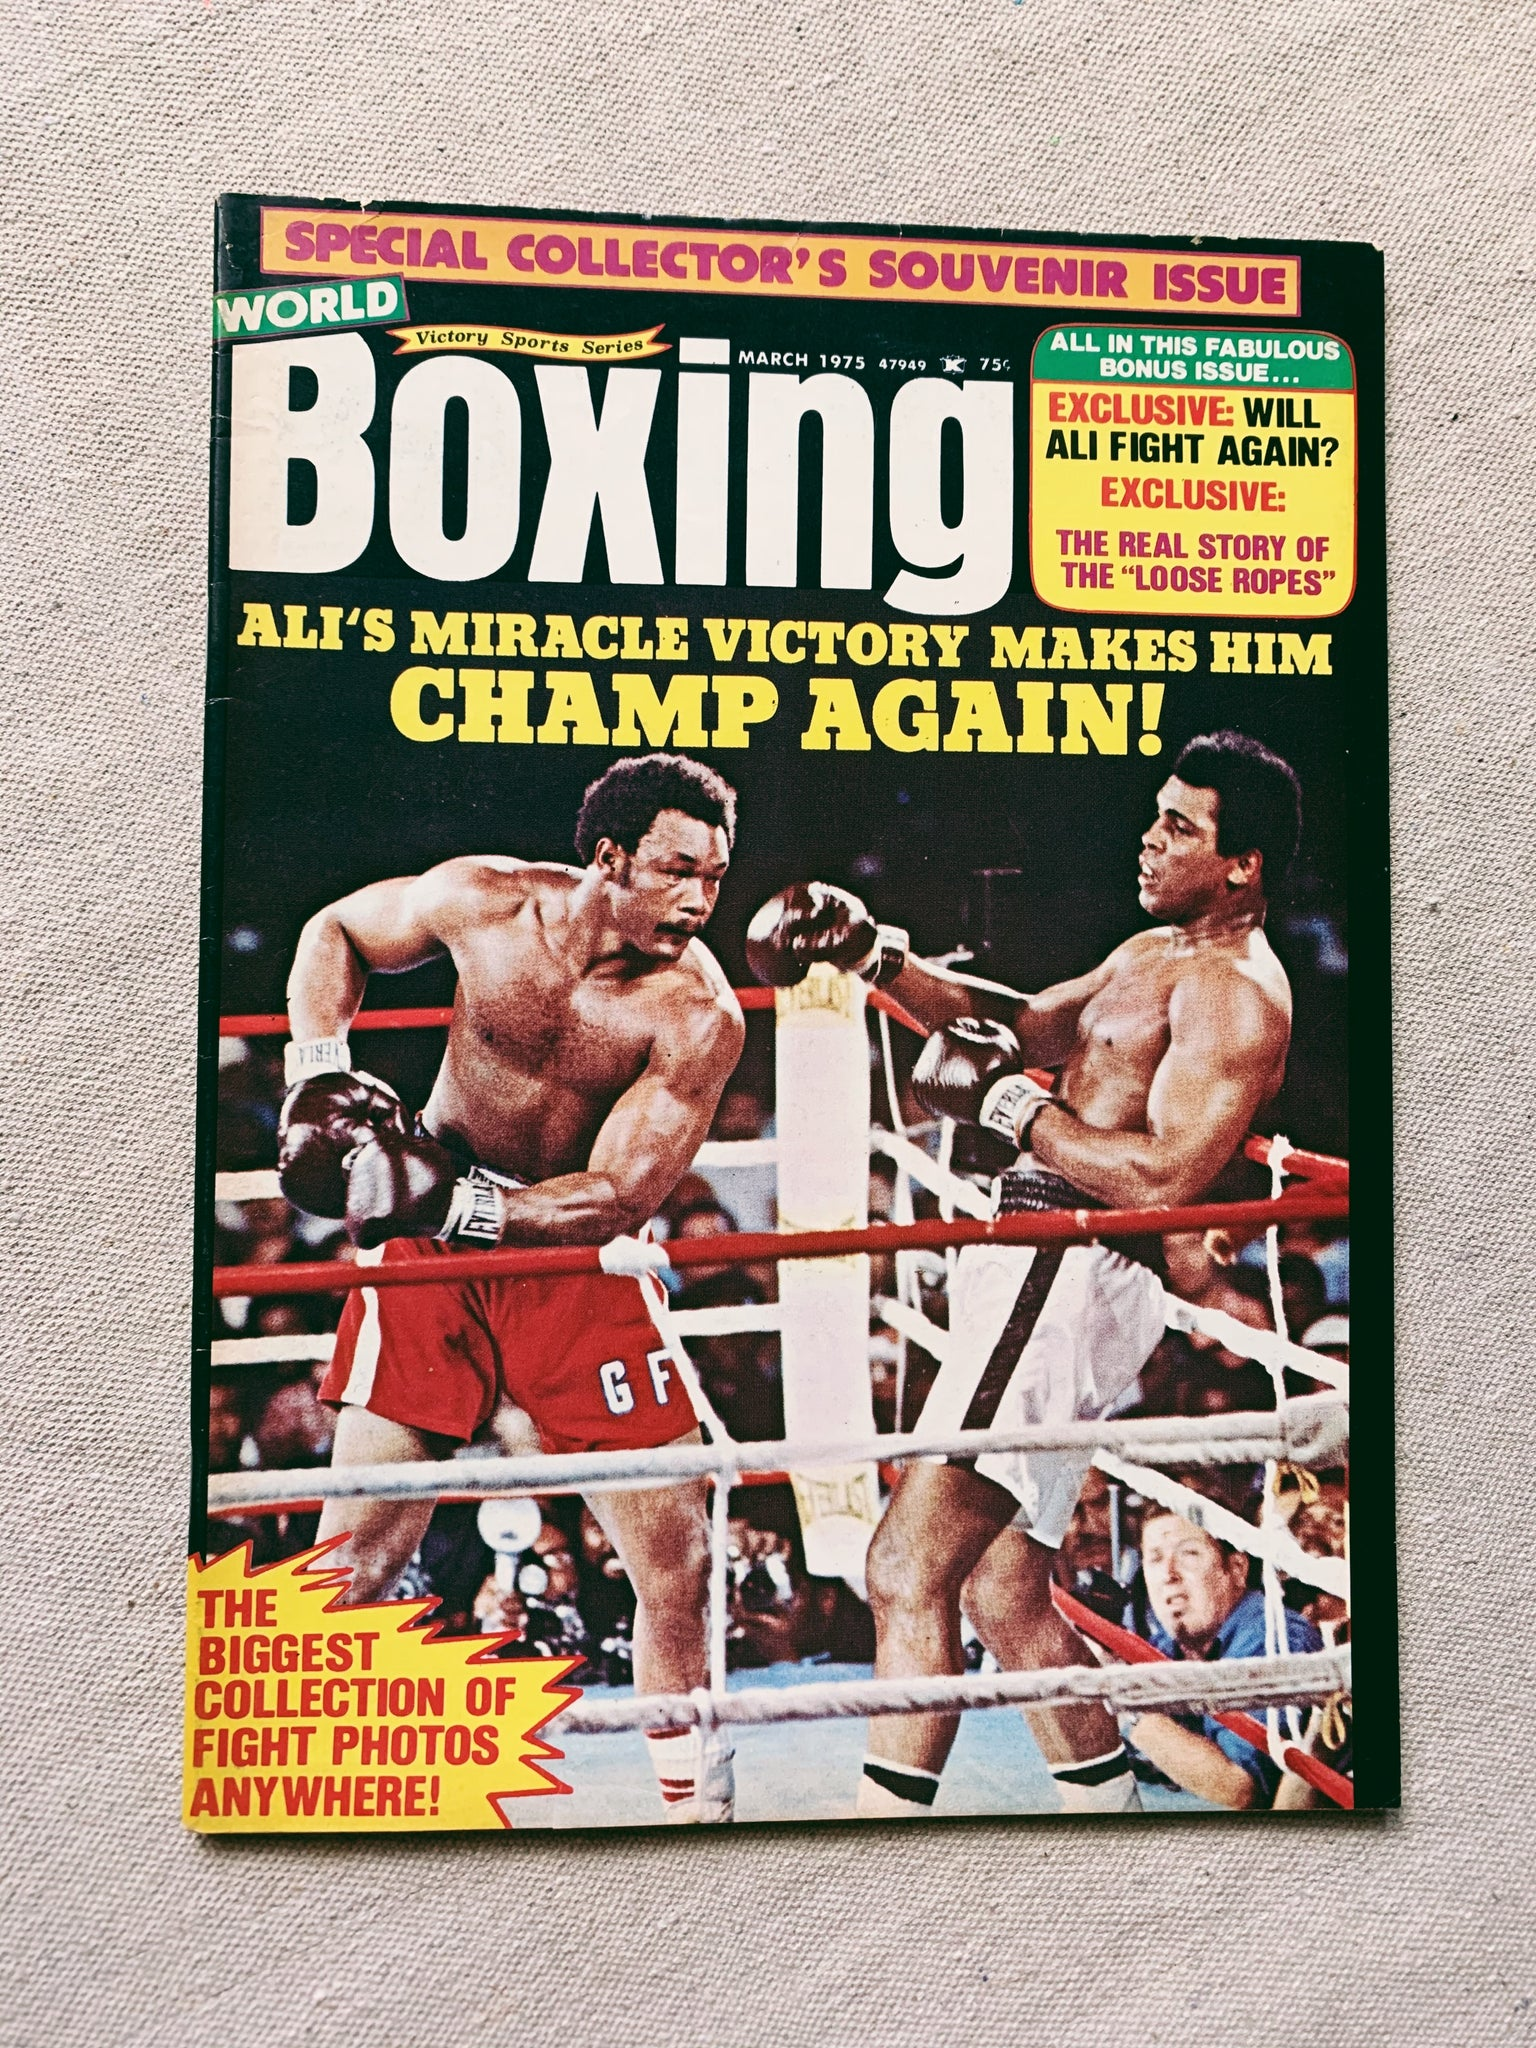 Vintage 1970's-80's Muhammad Ali Boxing Magazine Issue (Please Select)